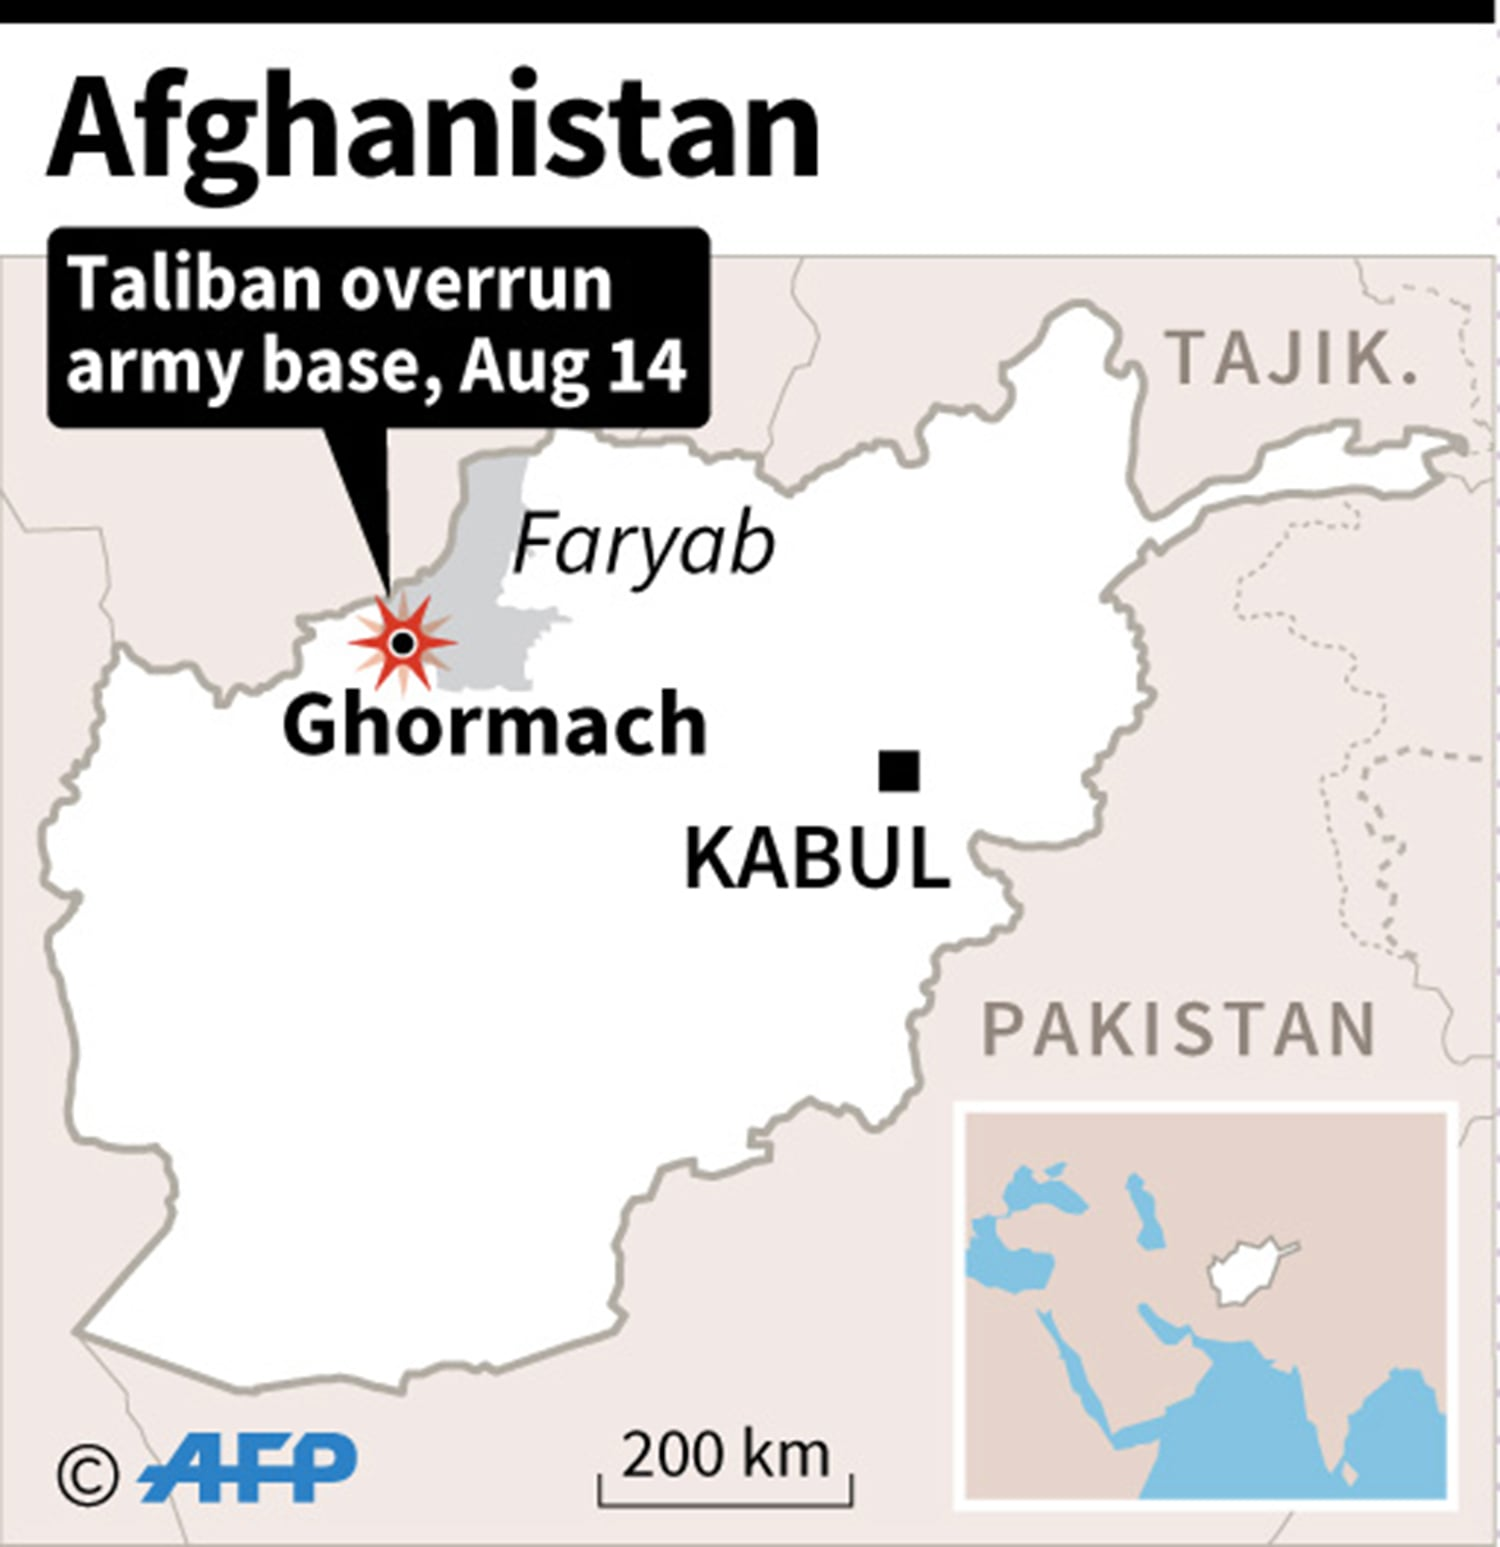 Over 100 Afghan forces, civilians killed in battle with Taliban